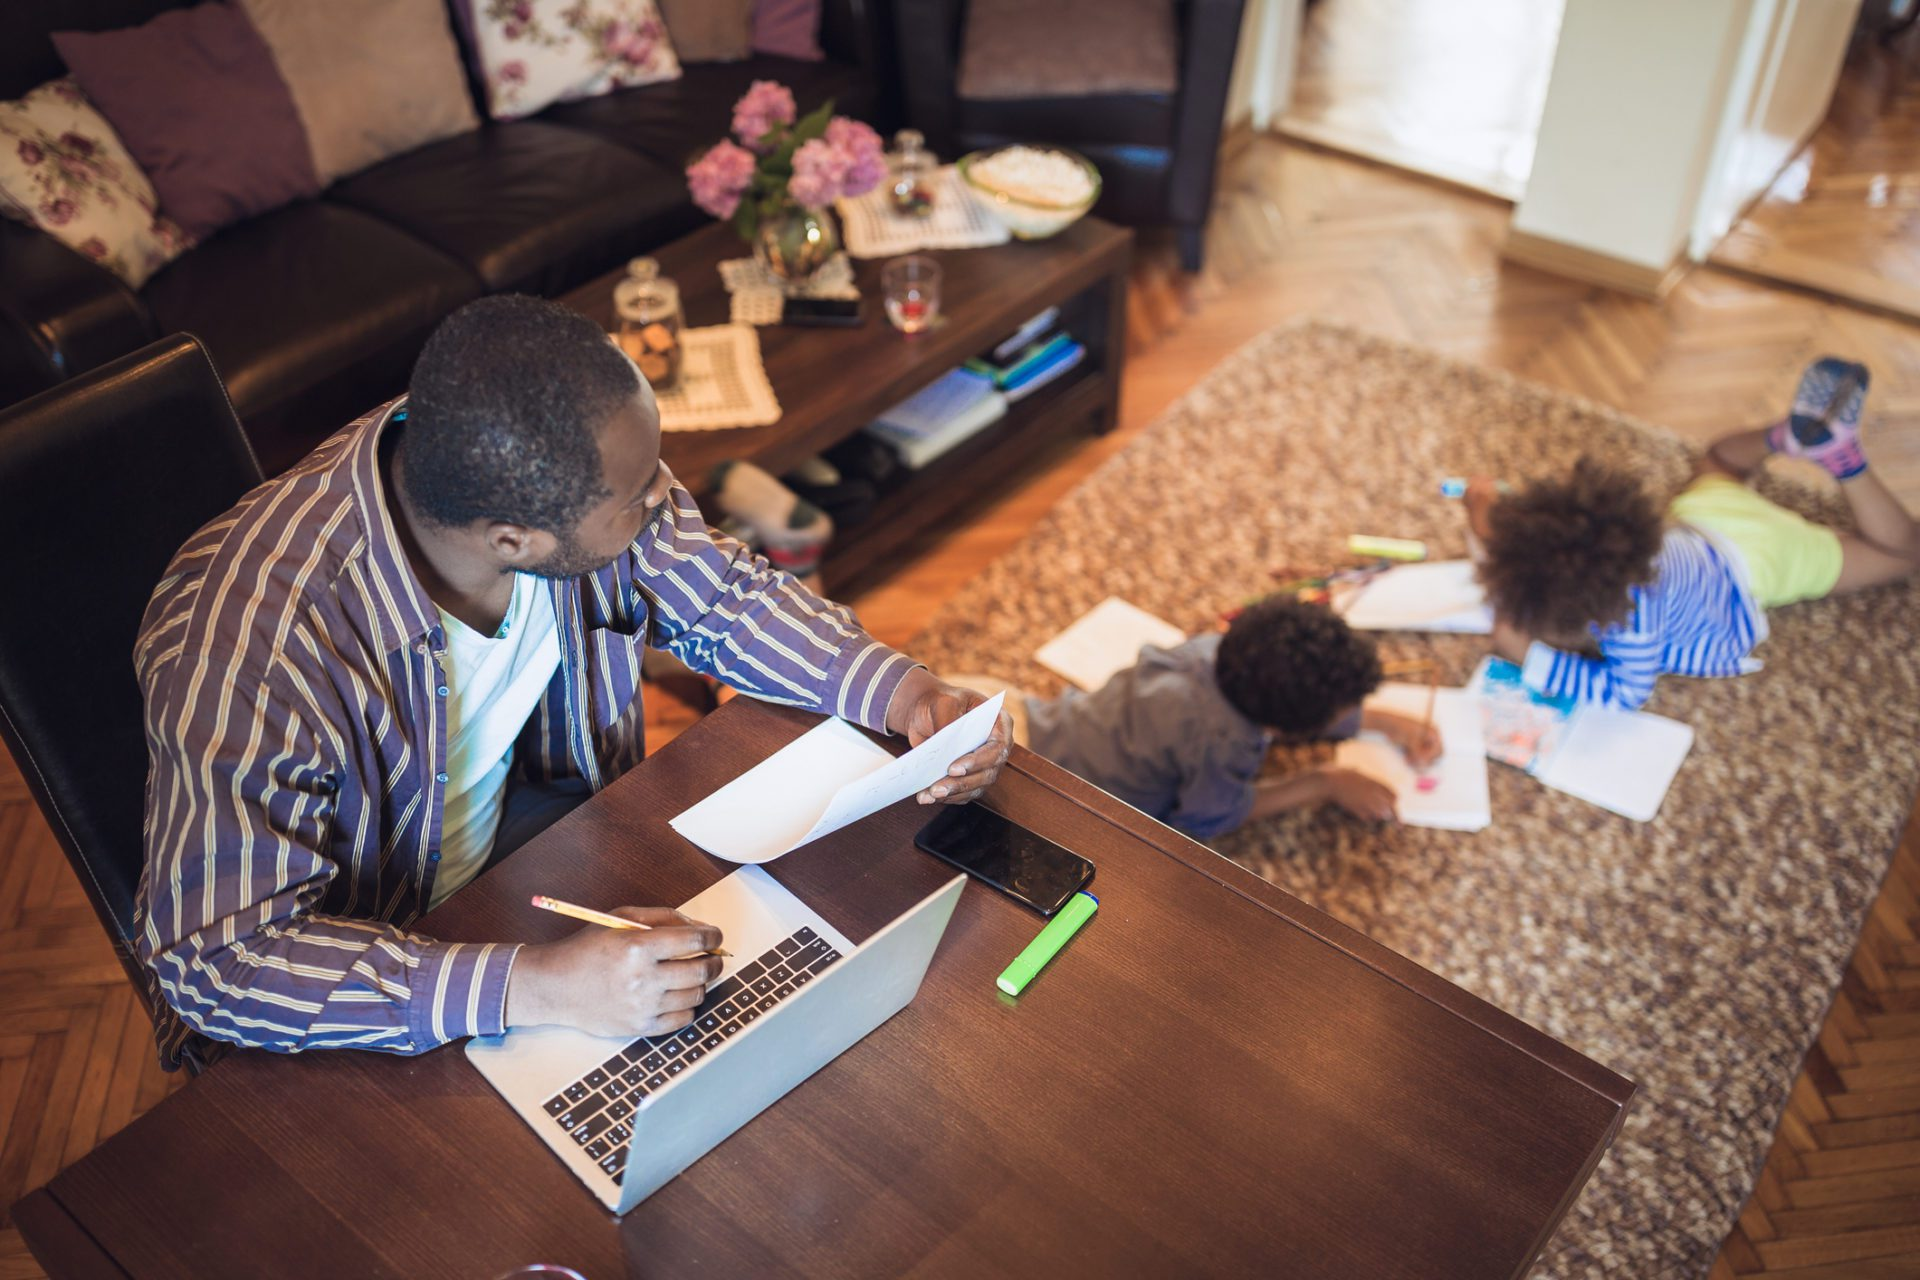 father at home with kids in flexible work environment